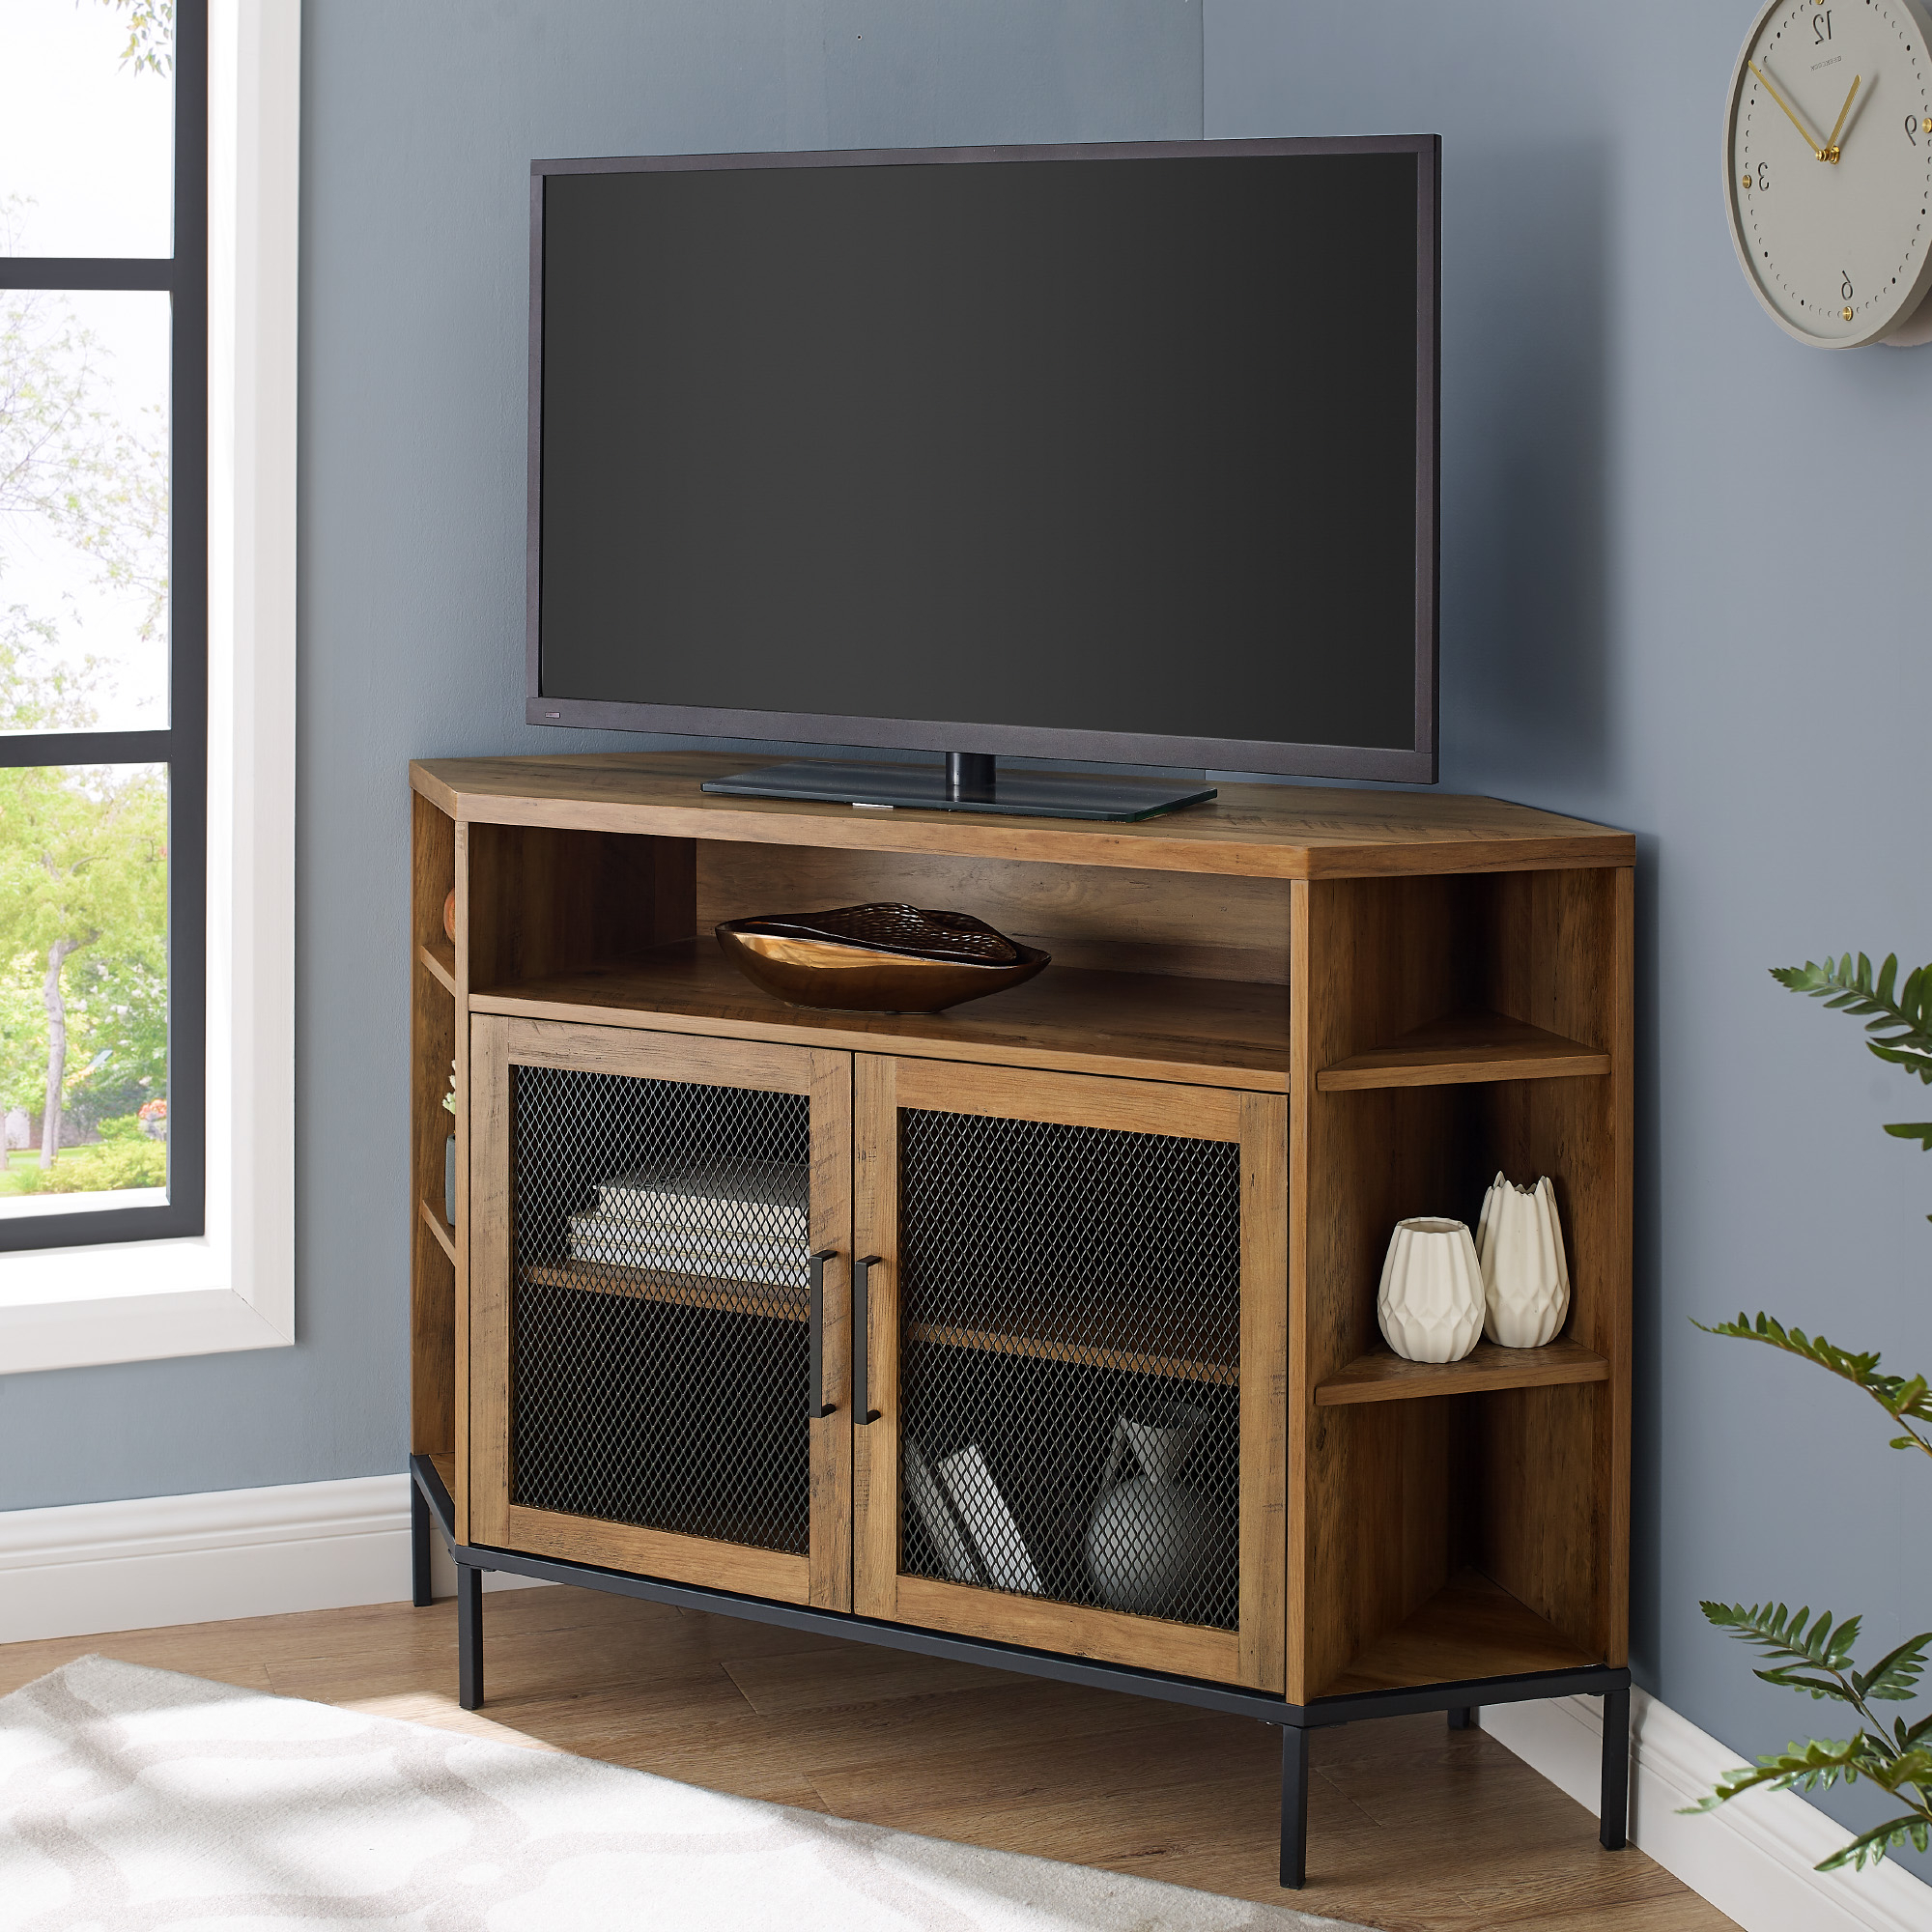 """Manor Park 48 Inch Corner Tv Stand For Tvs Up To 55 Inside Corner Tv Stands For Tvs Up To 48"""" Mahogany (View 1 of 20)"""